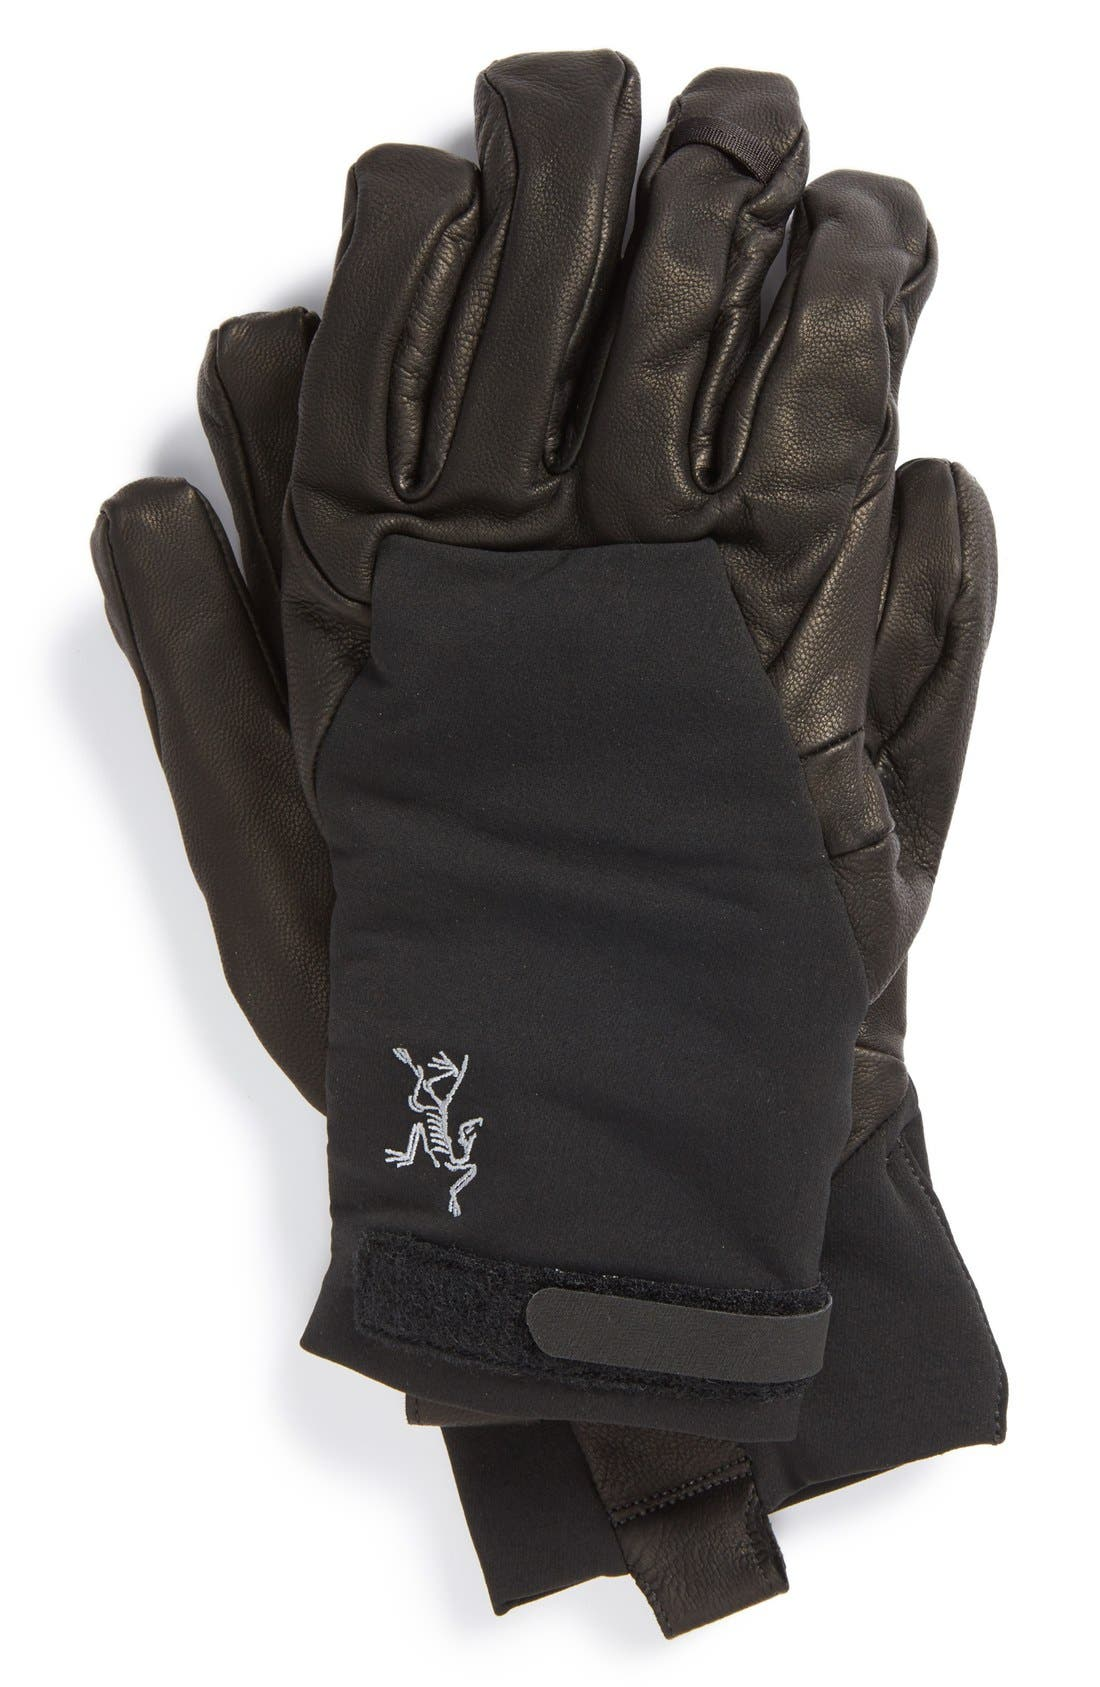 Alternate Image 1 Selected - Arc'teryx 'Cam SV' Soft Shell Gloves